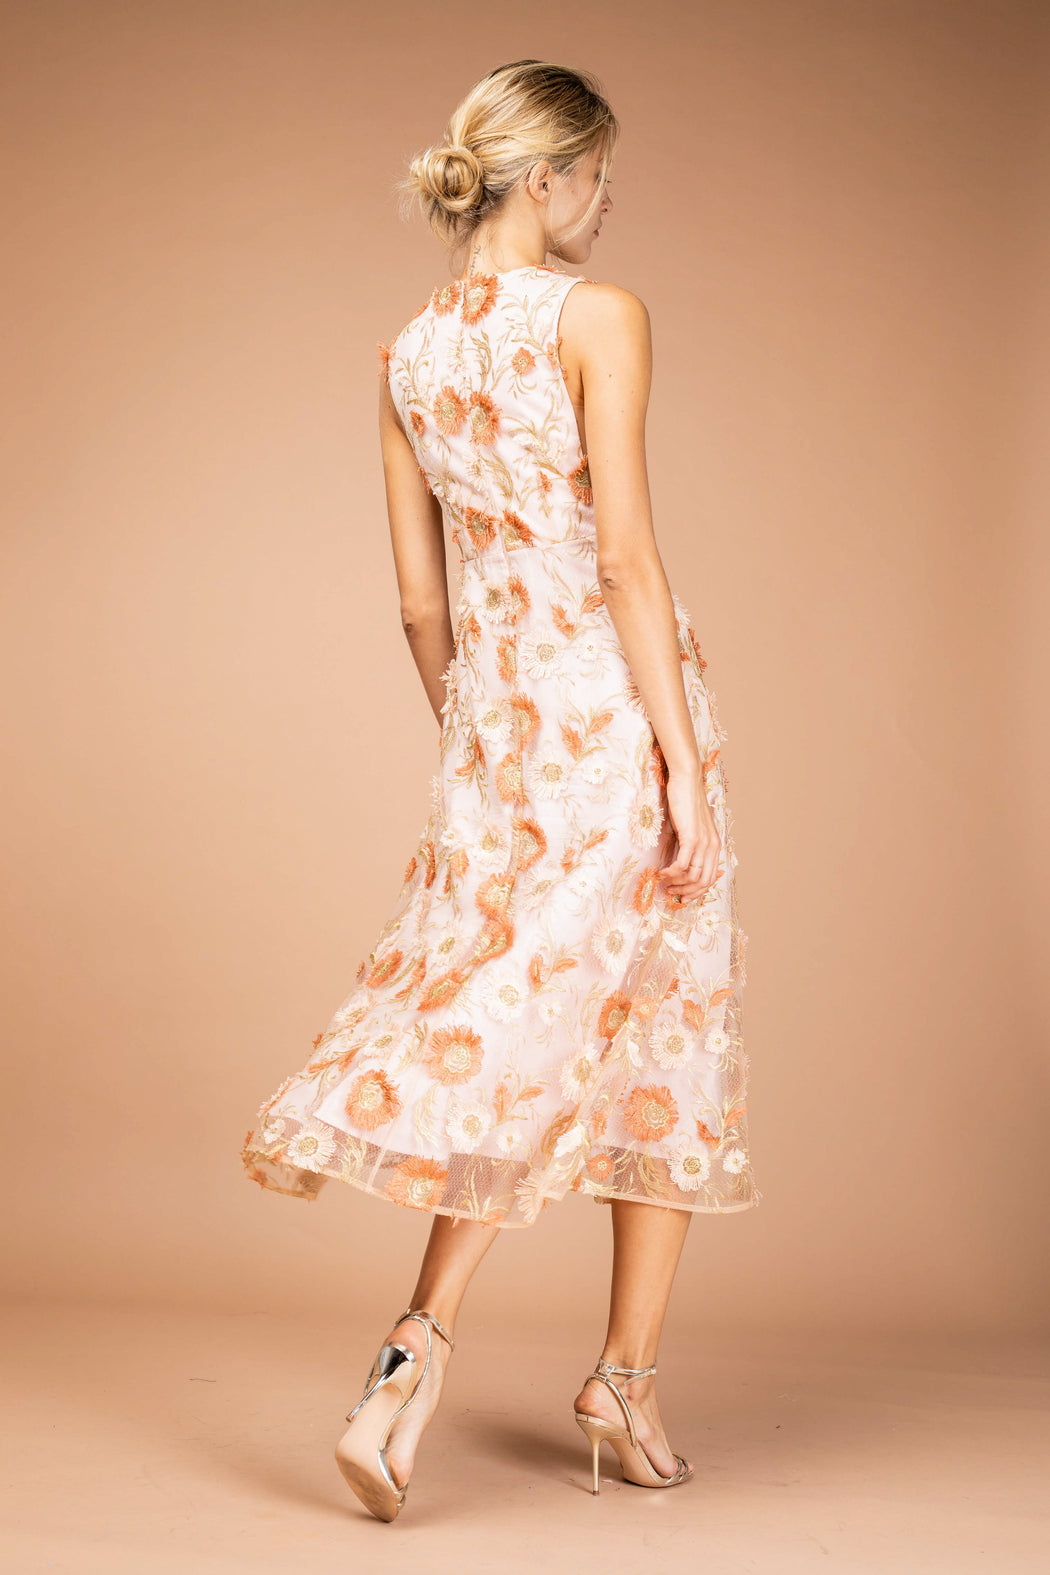 Fiona Floral Midi Dress - SAU LEE